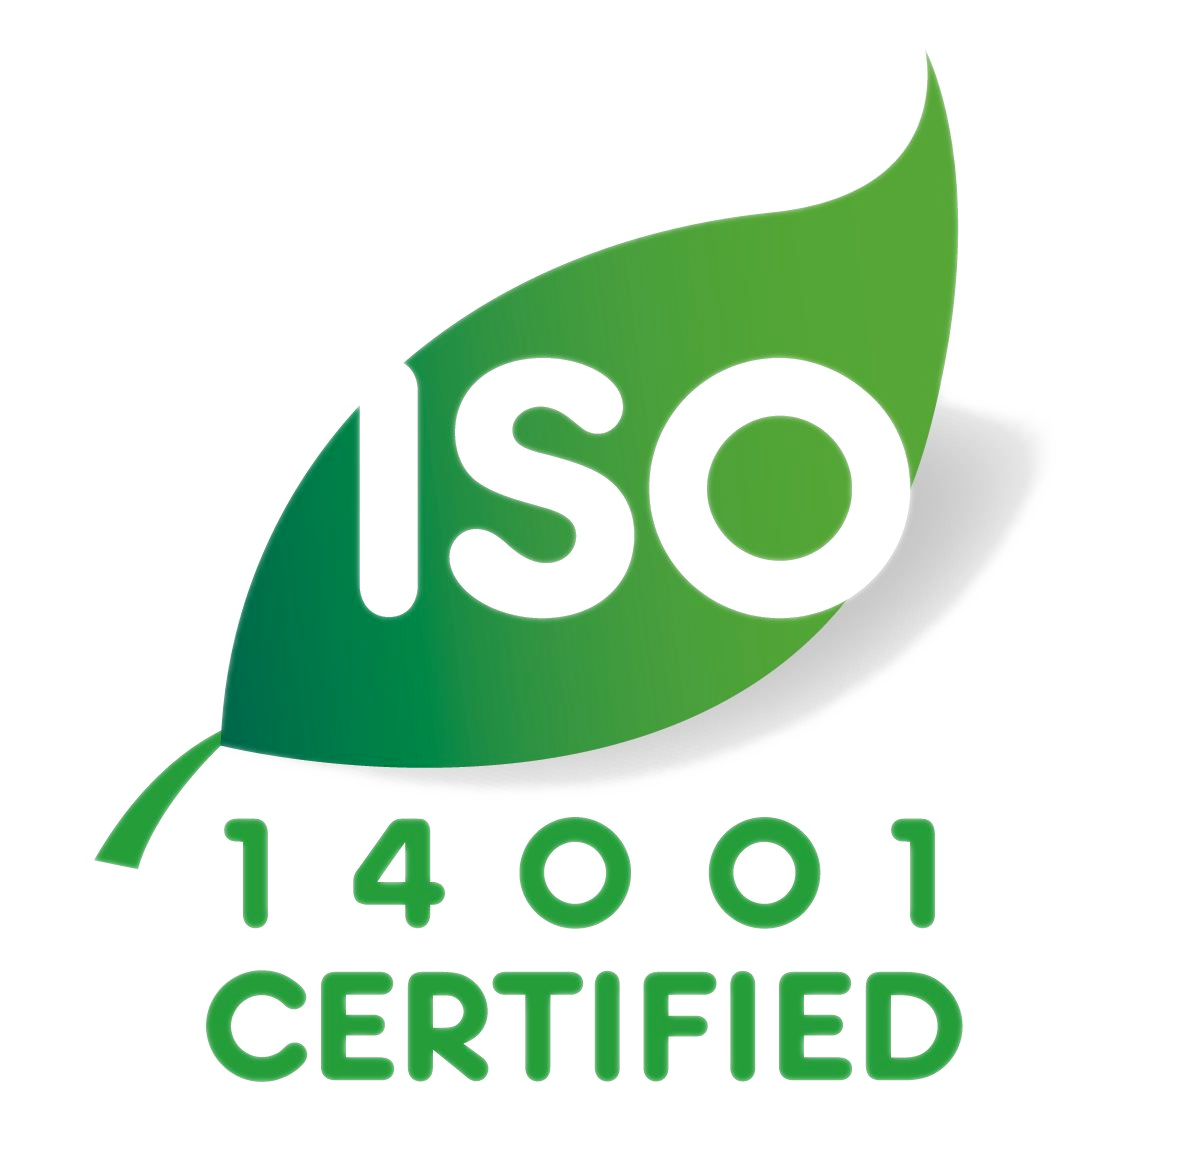 kisspng-logo-iso-14-1-iso-14-certification-internation-quick-ship-brands-5b900d79d94723.87517554153616728989